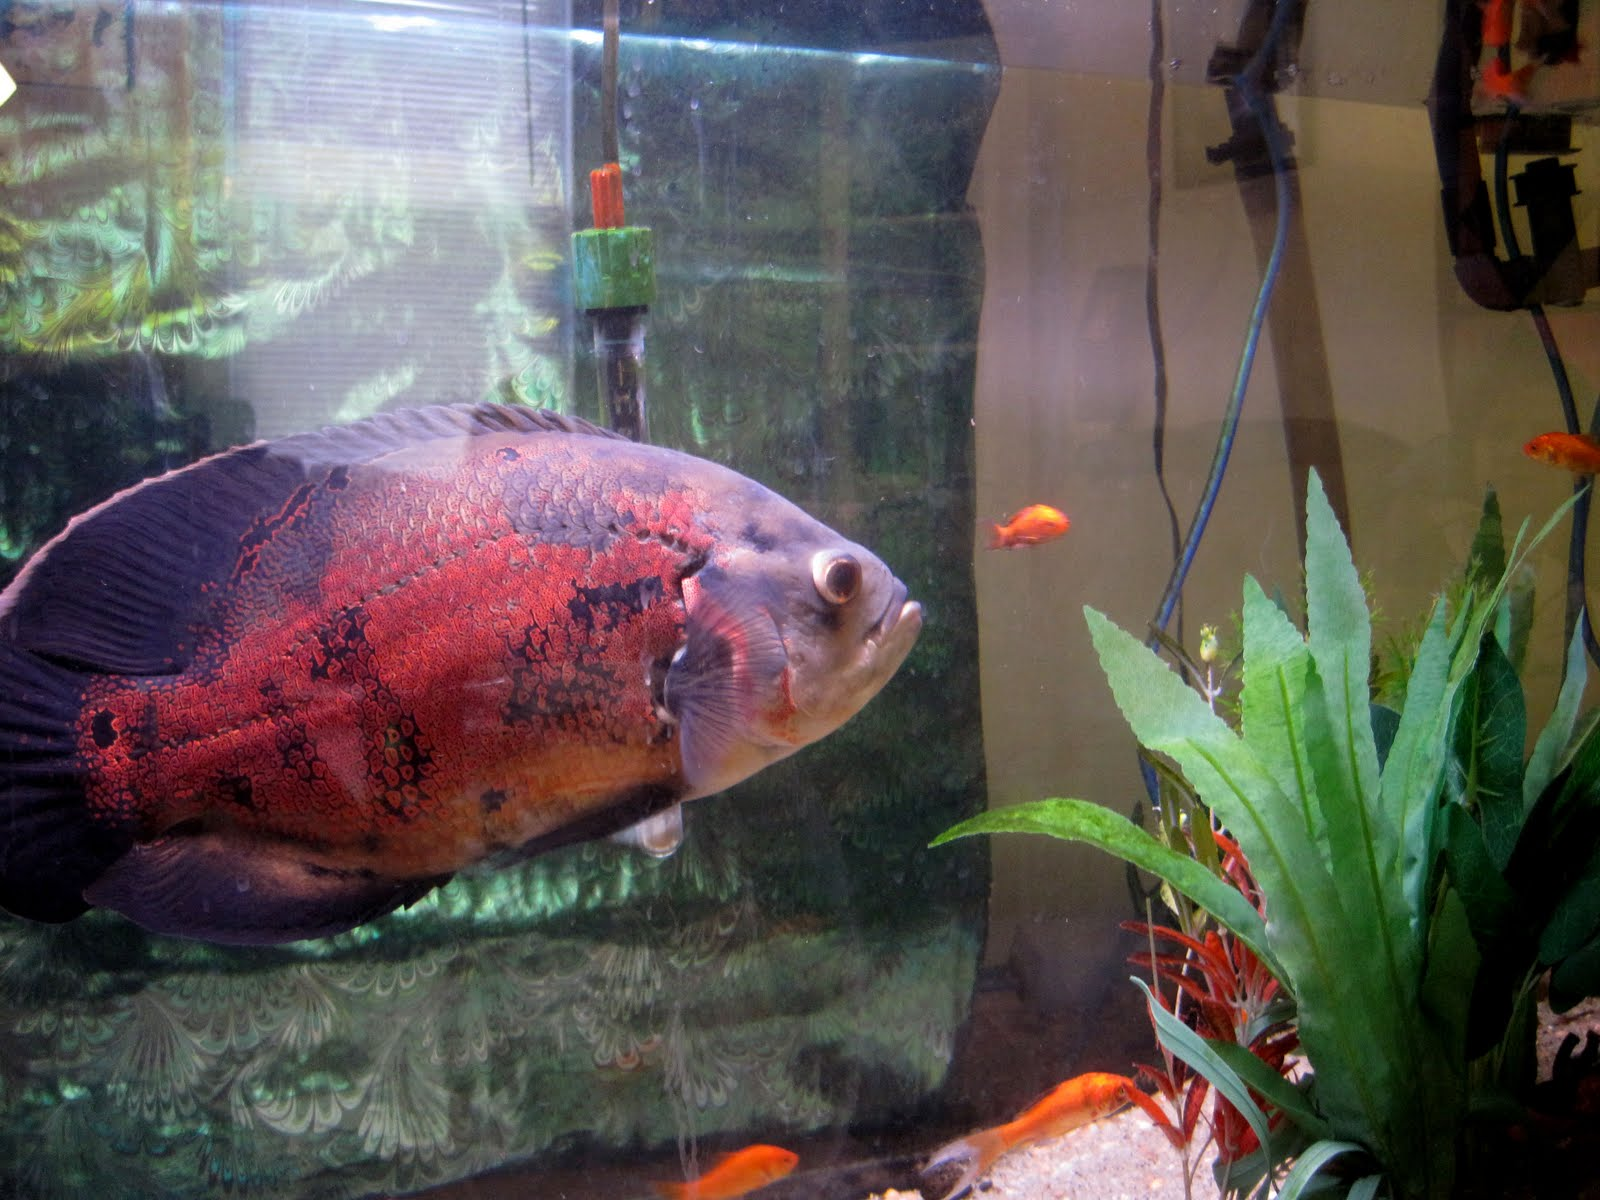 Above is a picture I took of Giant Oscar Fish